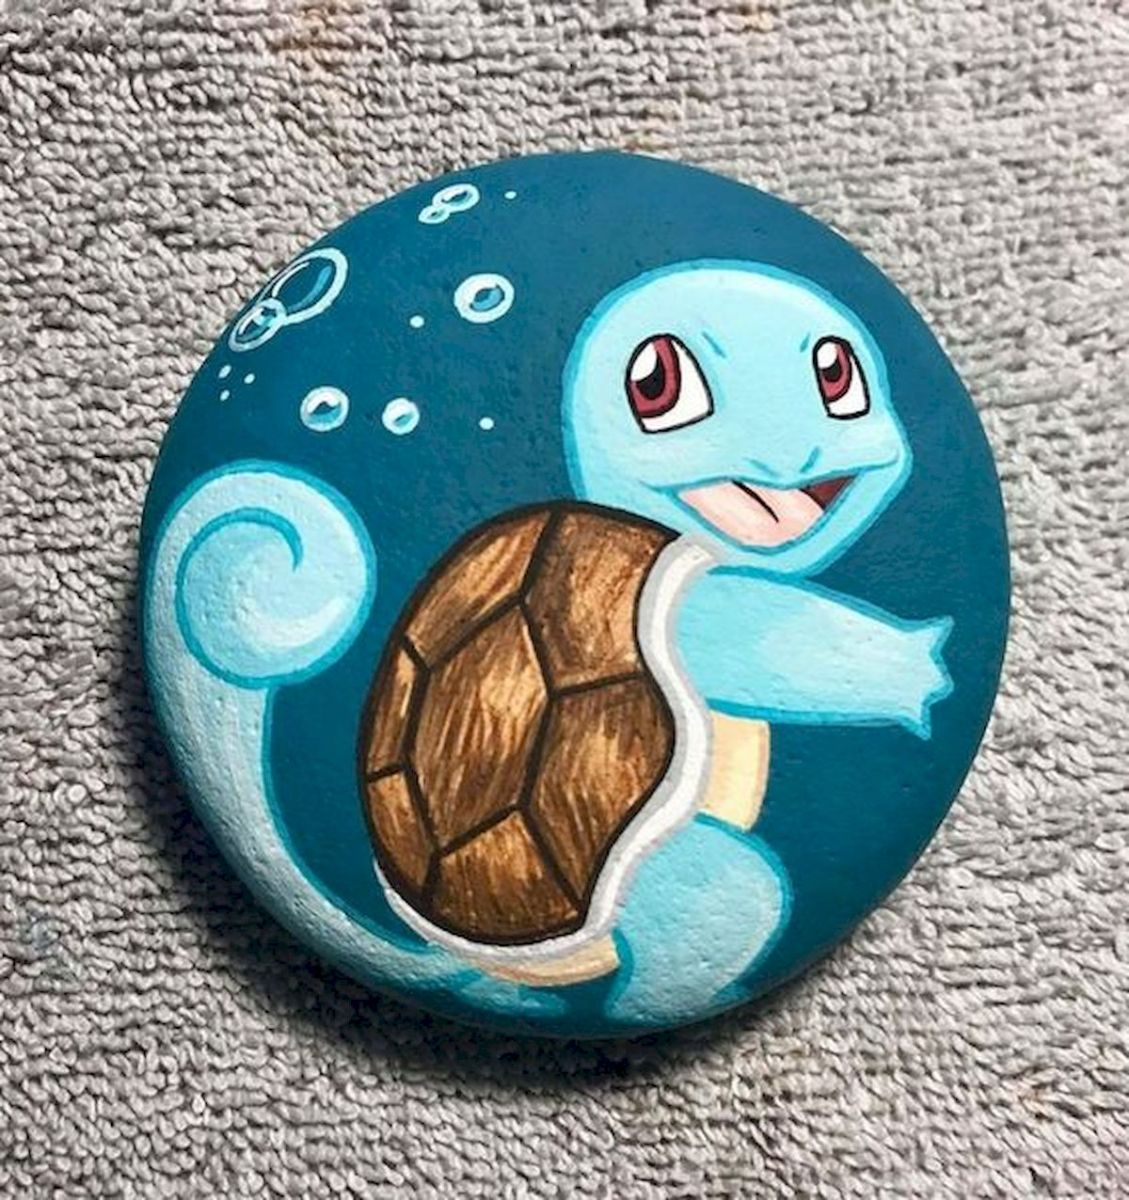 52 Best DIY Painted Rocks Remodel Ideas Perfect For Beginners (82)